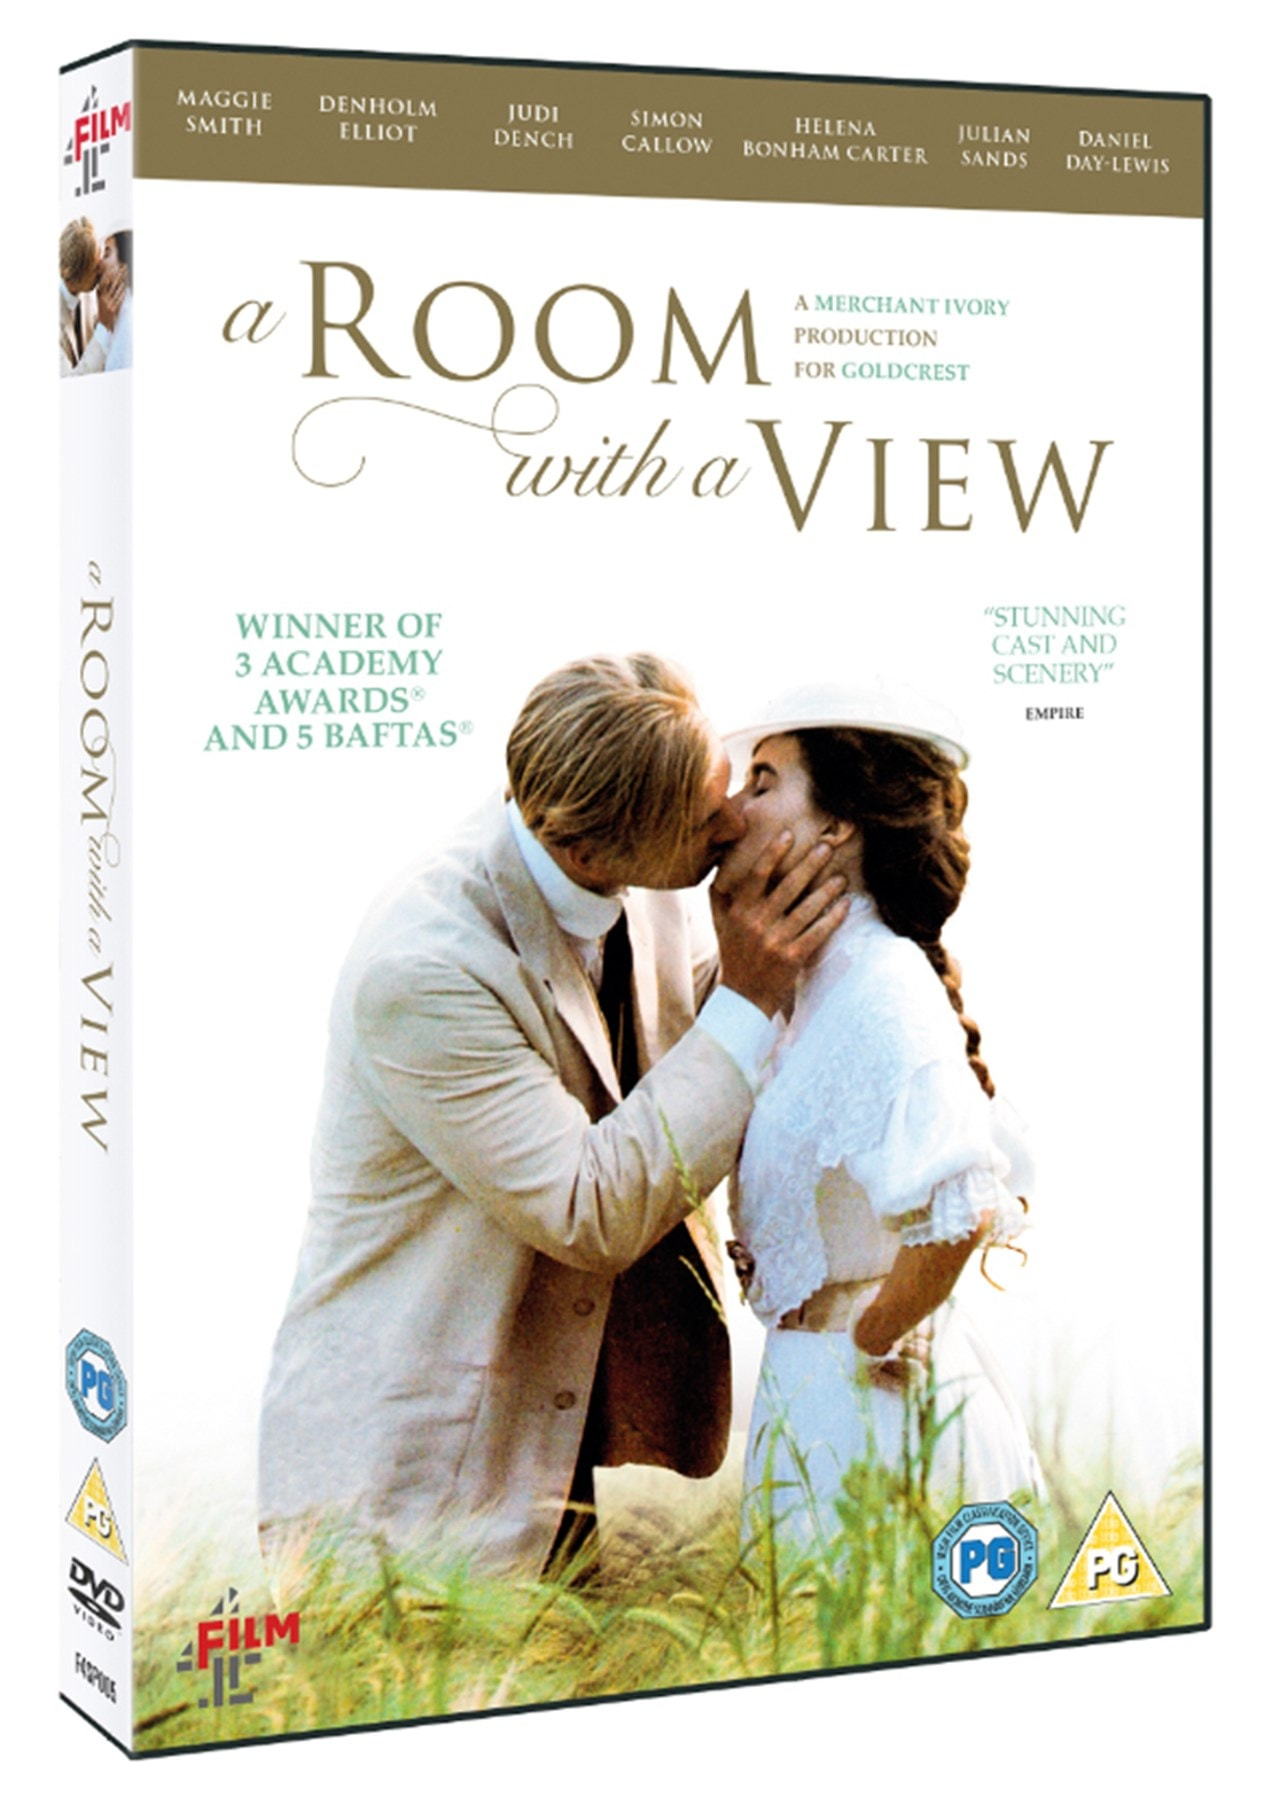 A Room With a View - 2